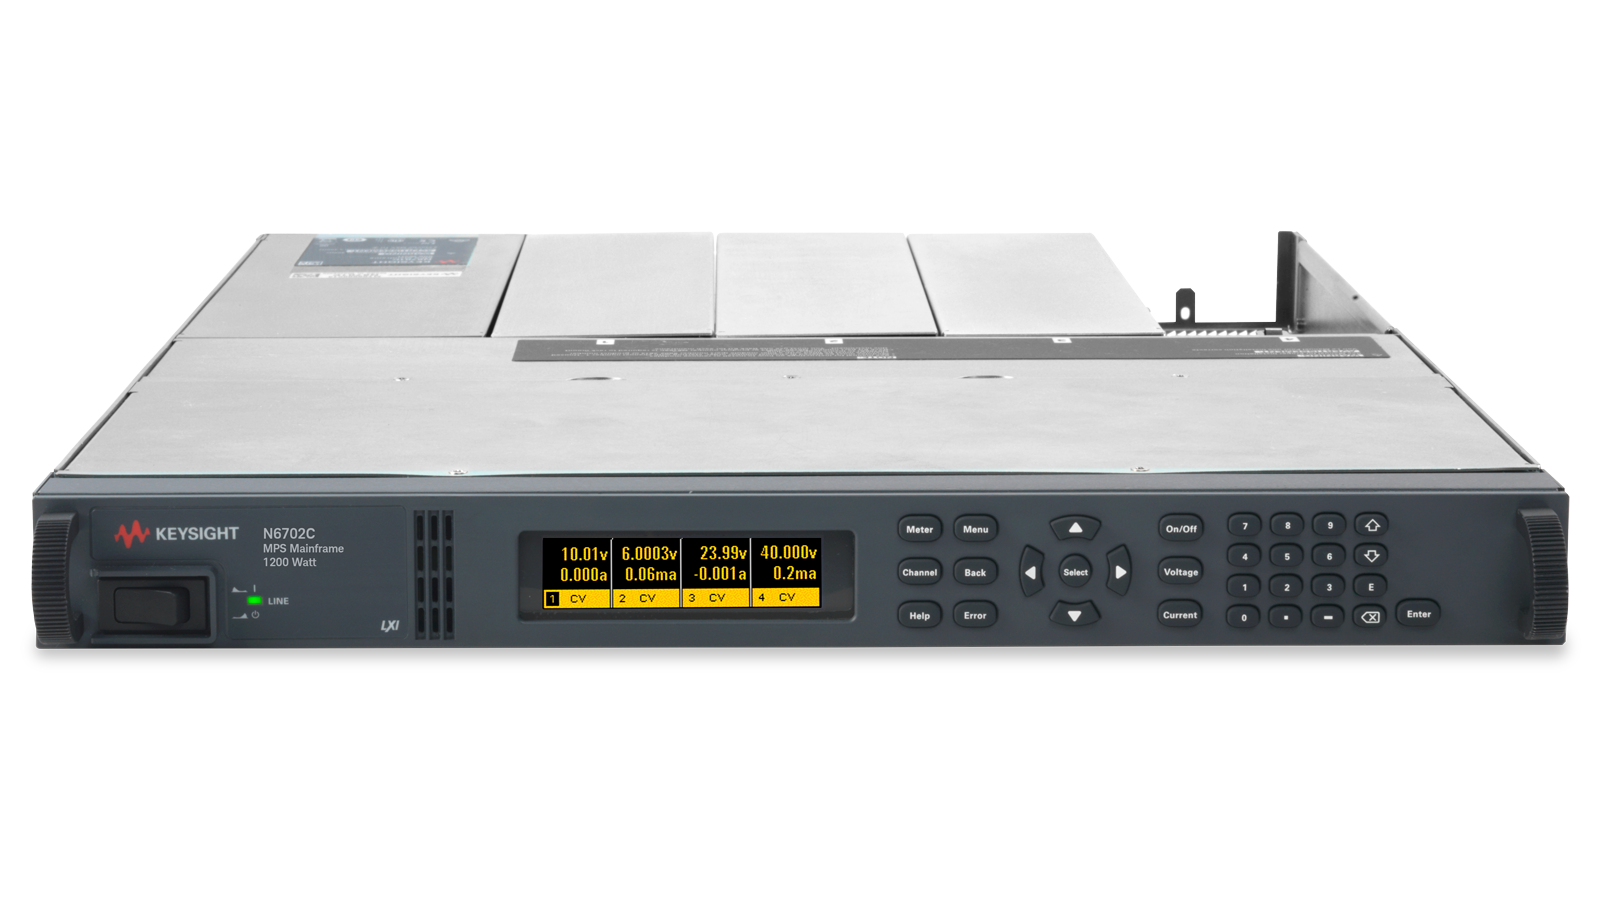 N6700 series modular power supply - front top